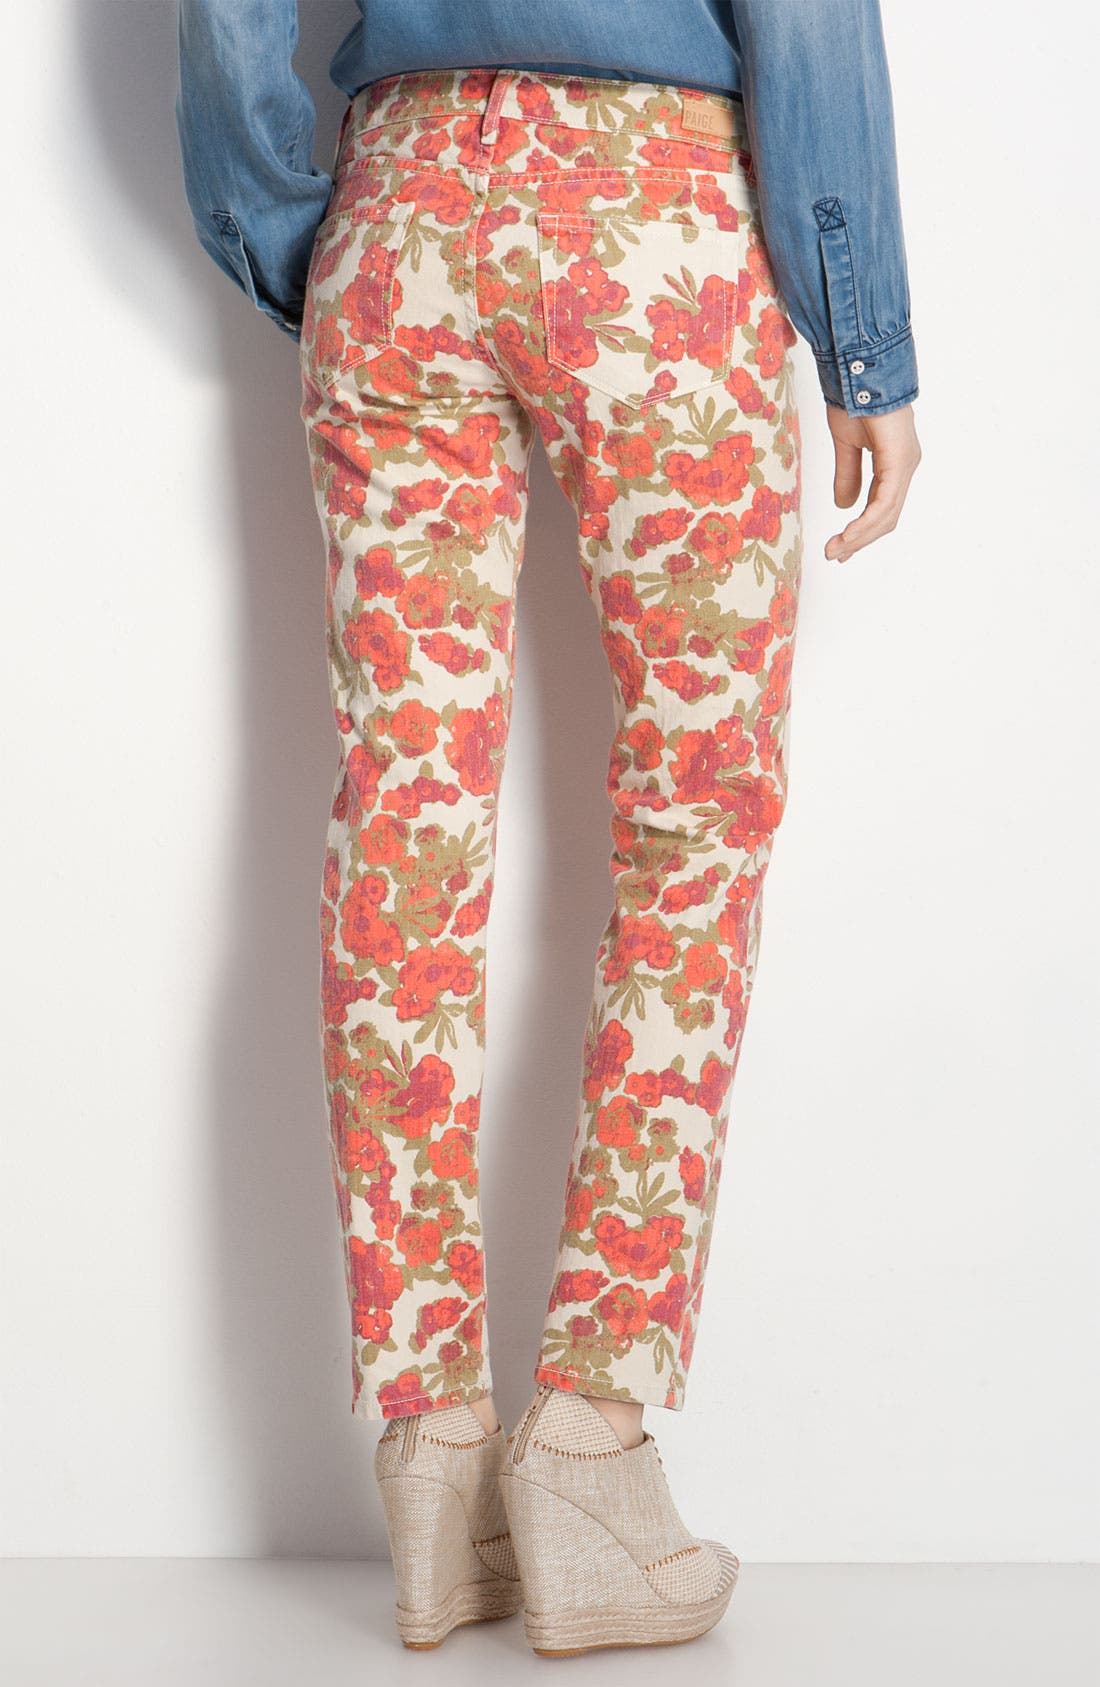 Alternate Image 1 Selected - Paige Denim 'Skyline' Floral Skinny Ankle Jeans (Chello Ivory Print)